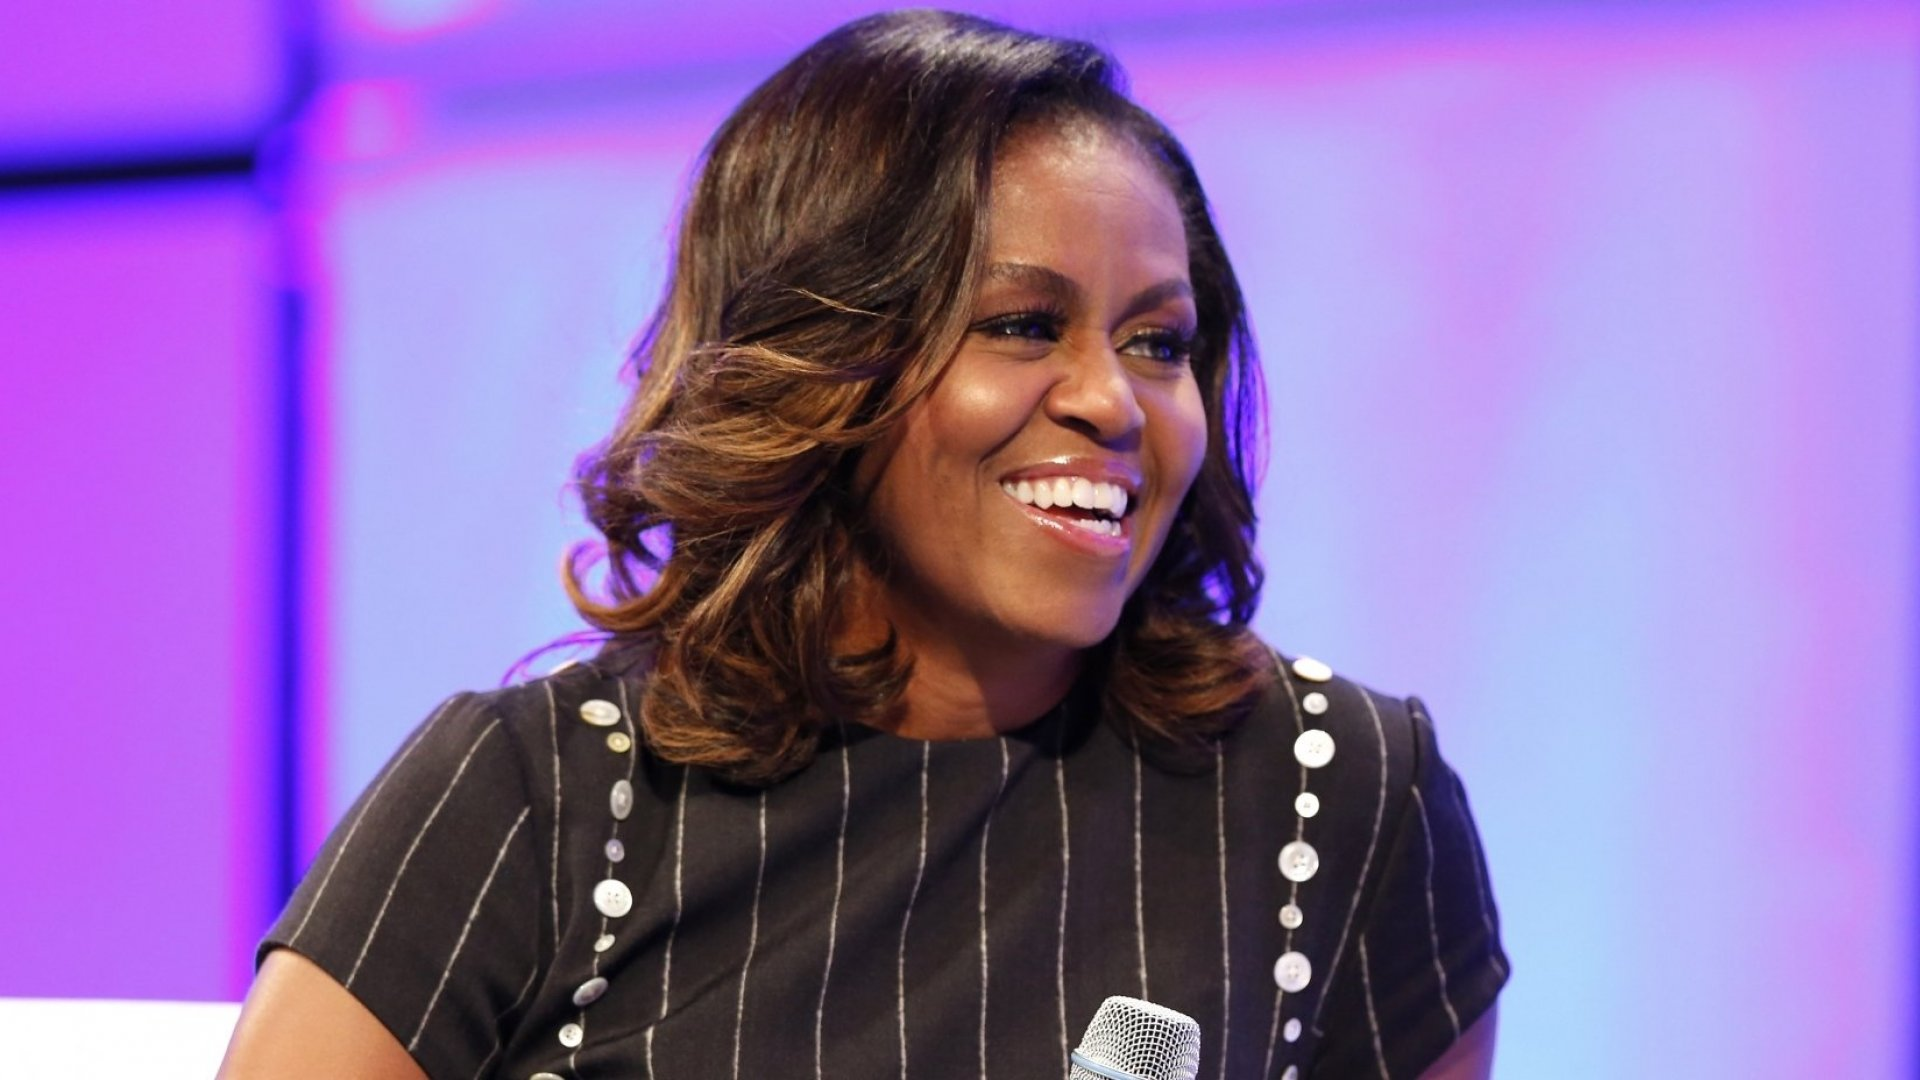 Michelle Obama at Dreamforce Just Delivered an Inspirational Message to the Tech World